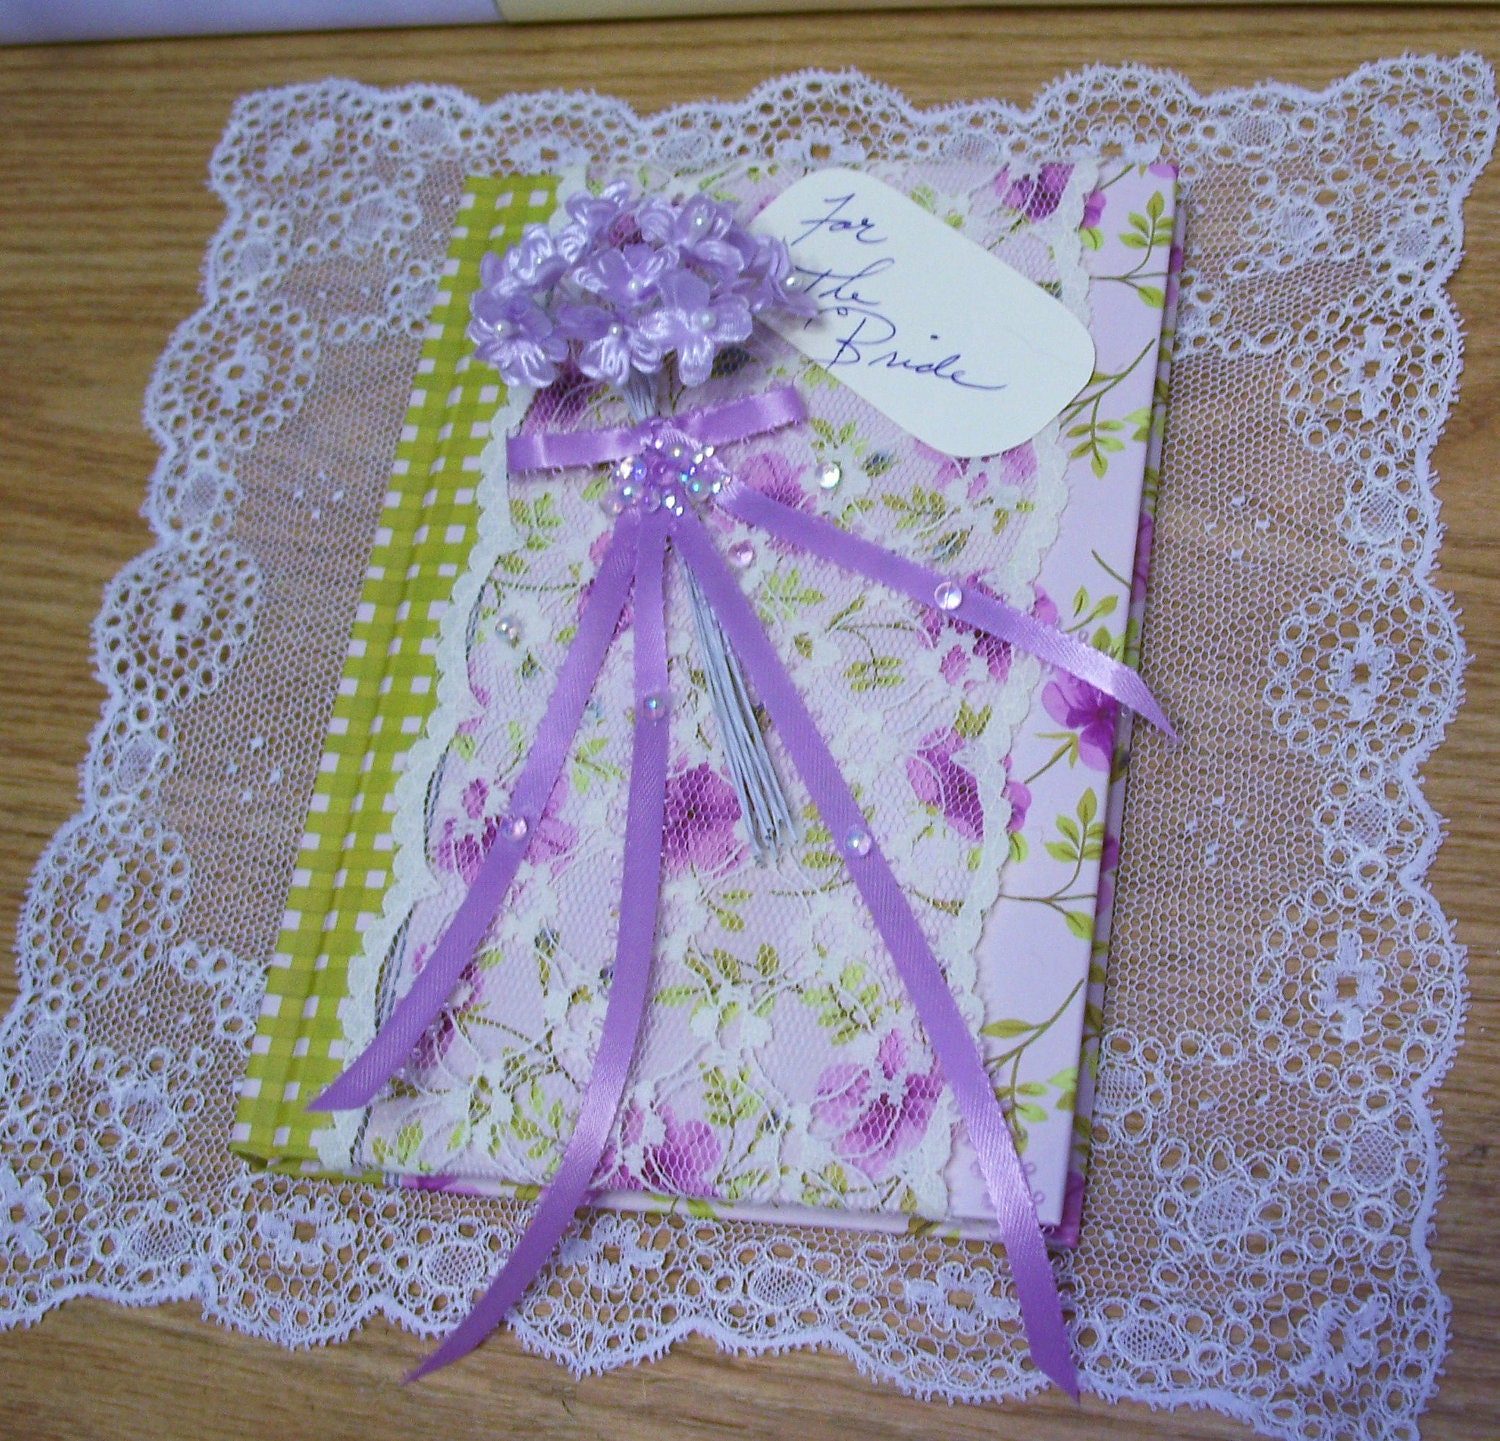 Bride Journal - Blank- Notes of Note- Altered- Lace-  Flowers-  Bubbles-  Ribbon-  Bride Tag- Altered